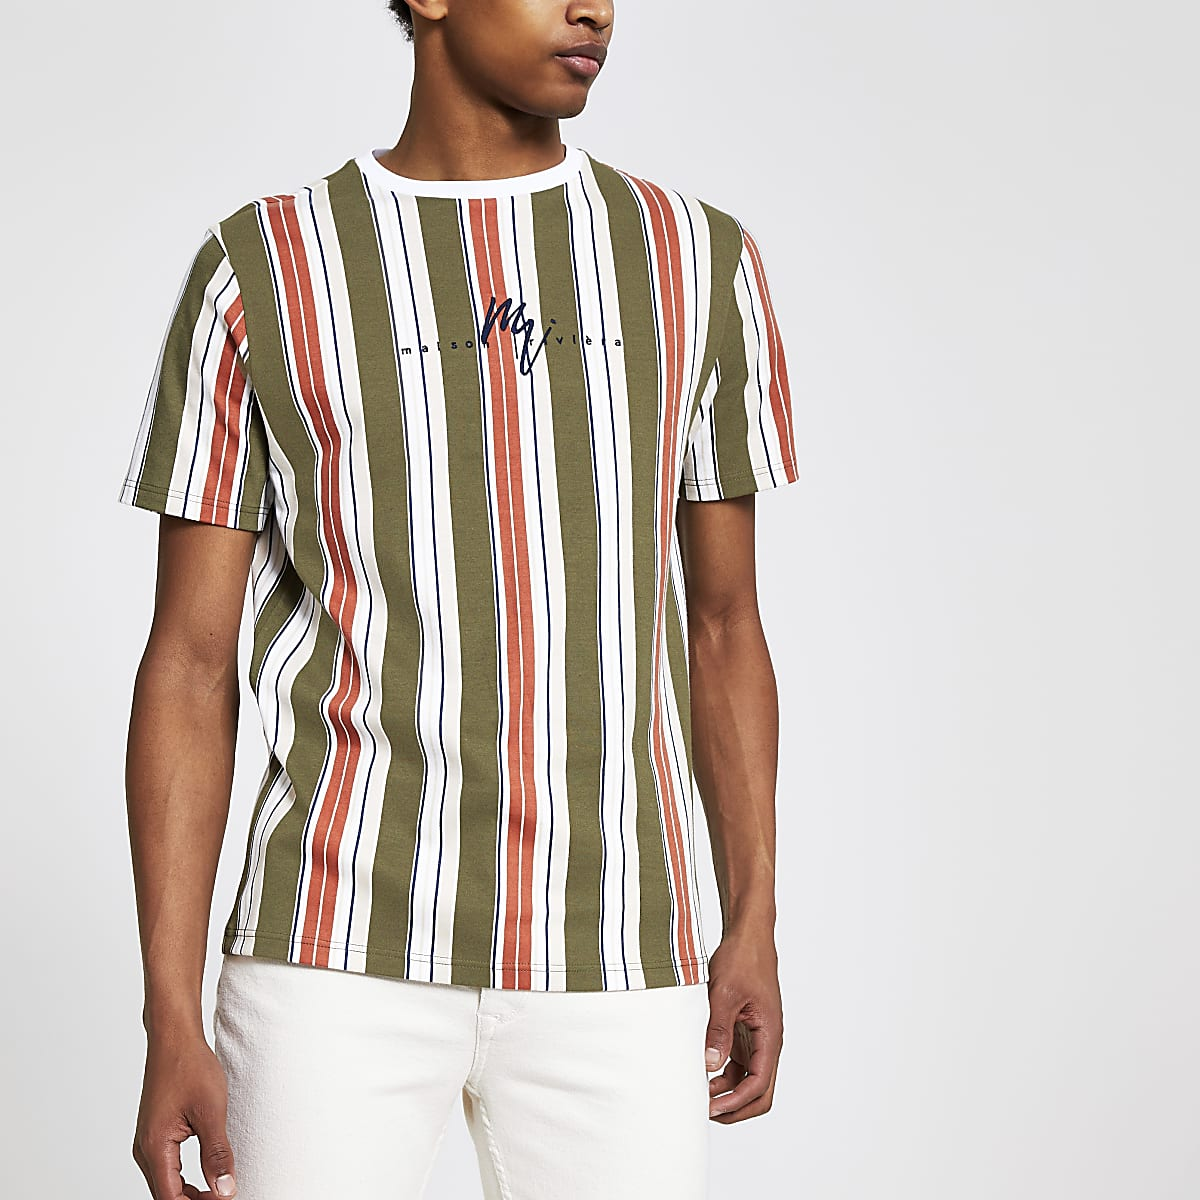 Orange stripe Maison Riviera slim T-shirt